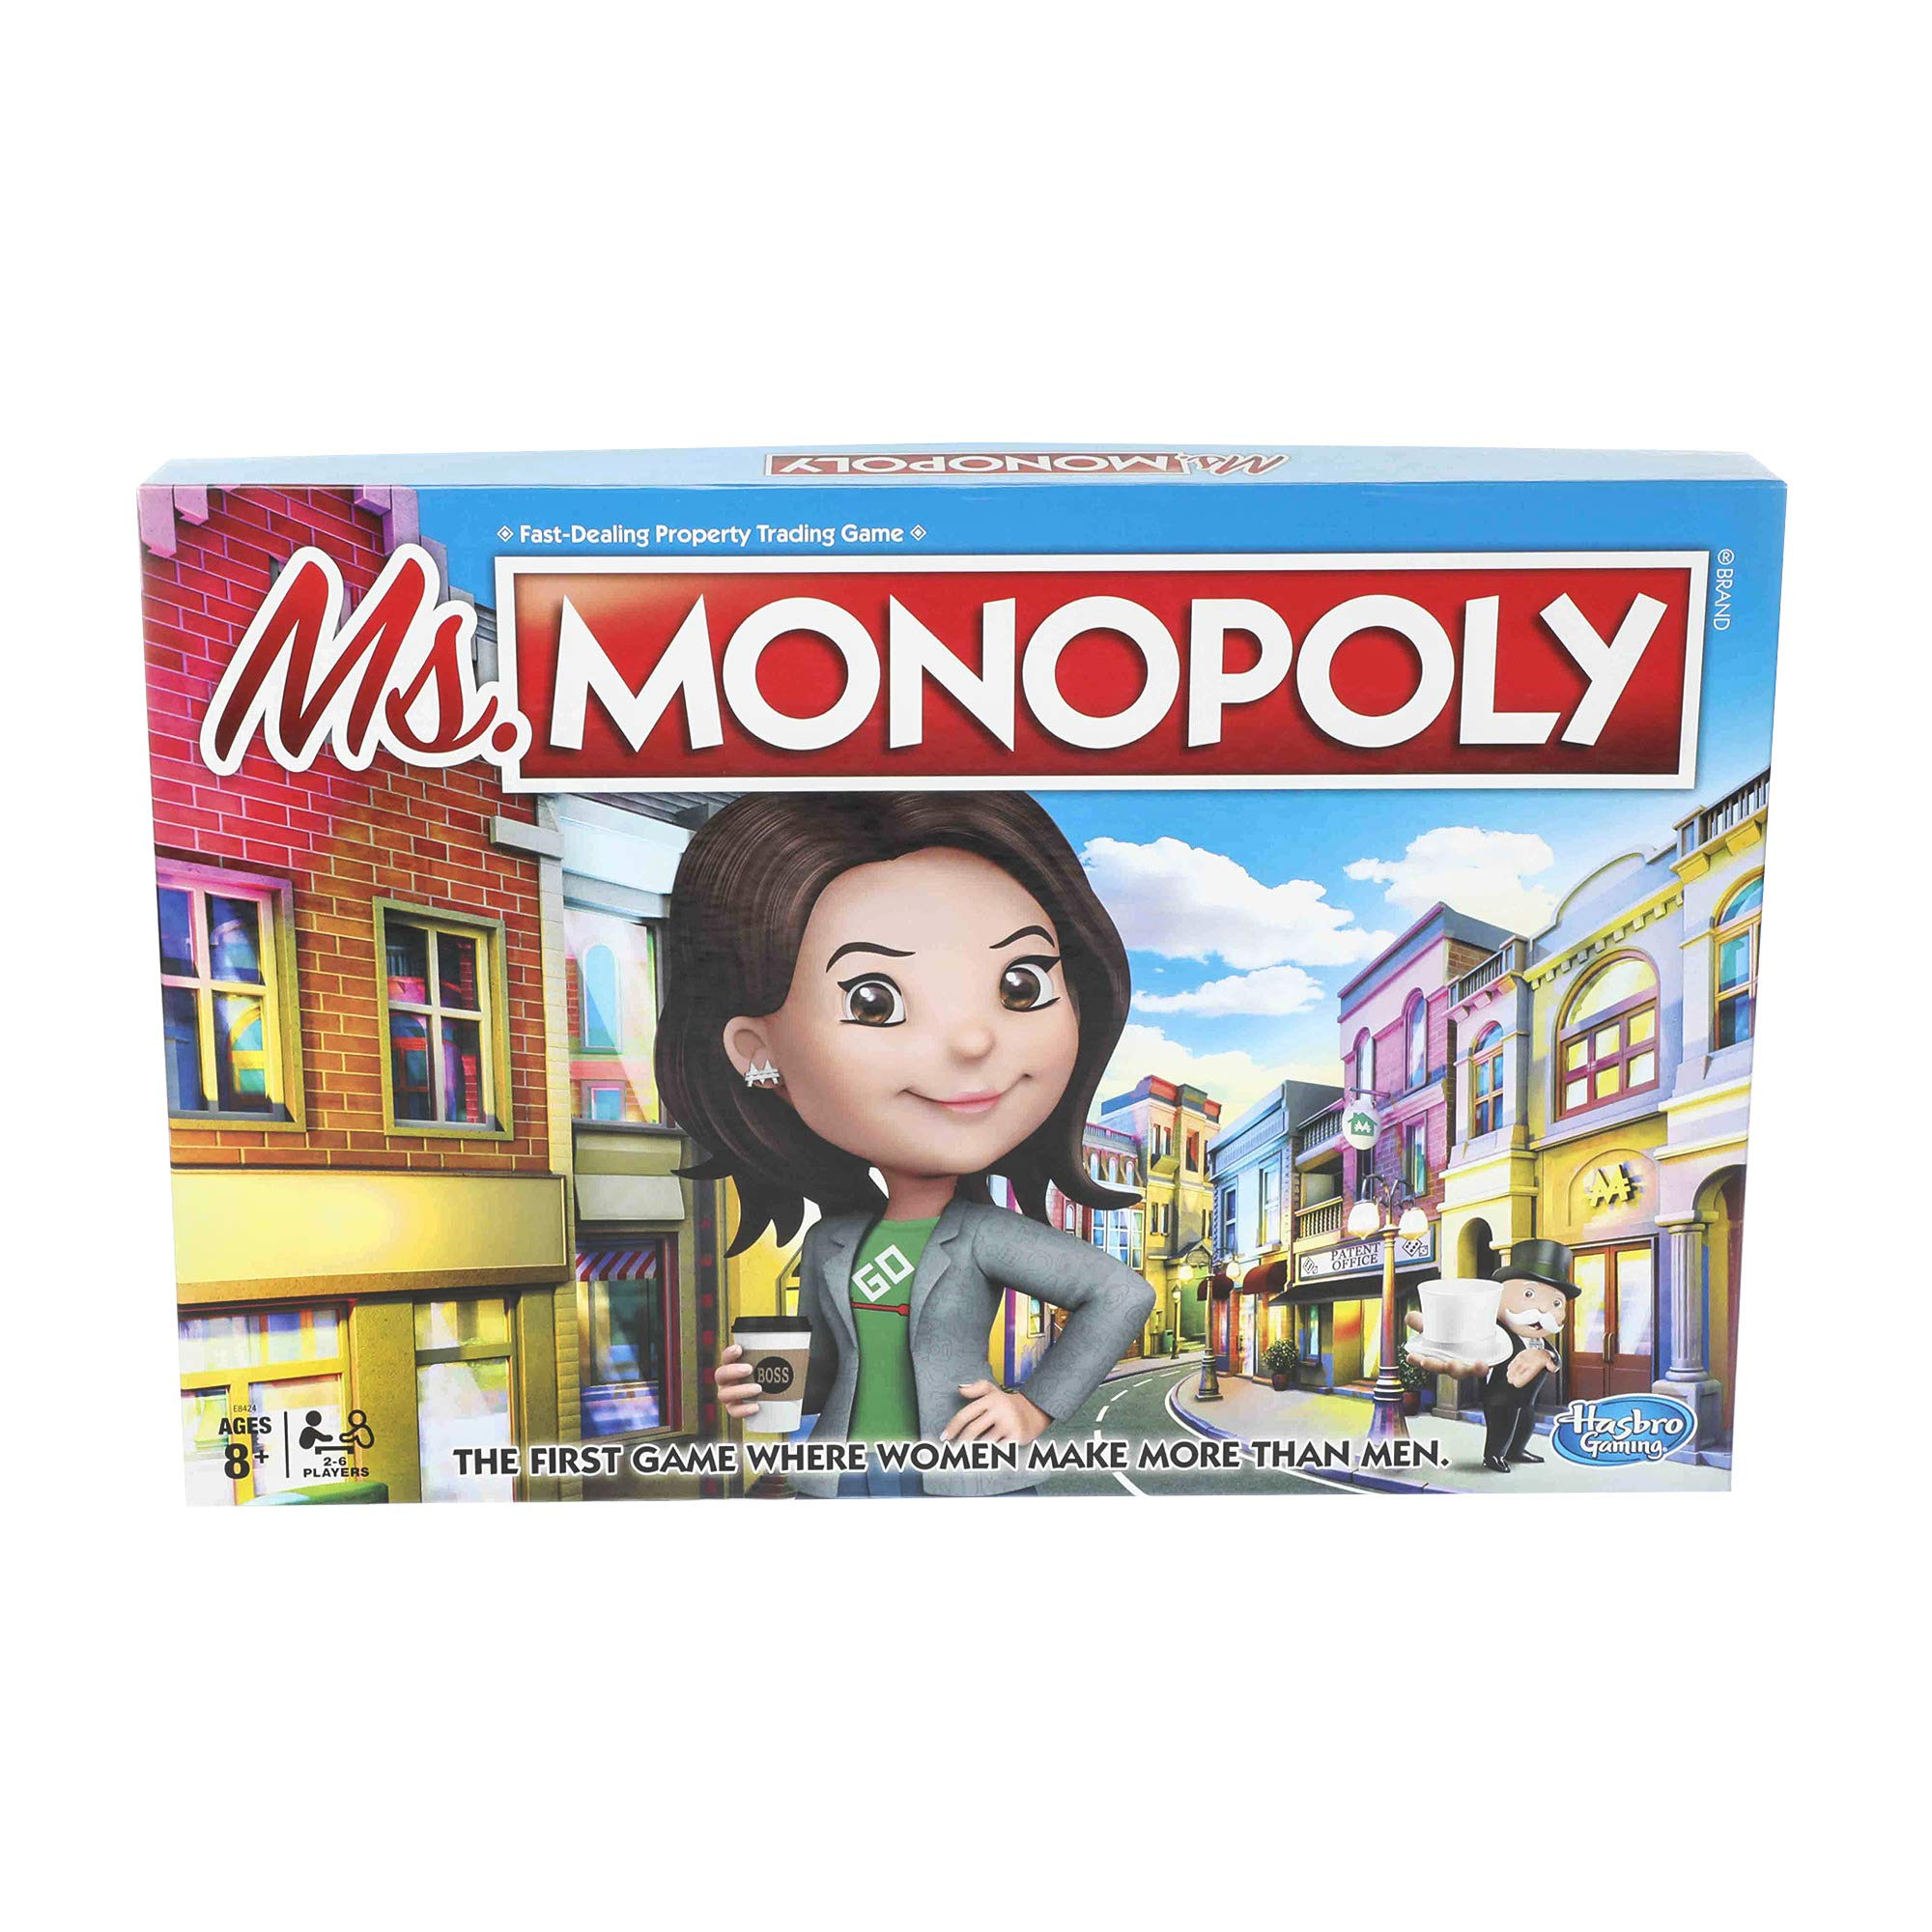 Monopoly Ms.Monopoly Board Game for Ages 8 & Up by Monopoly